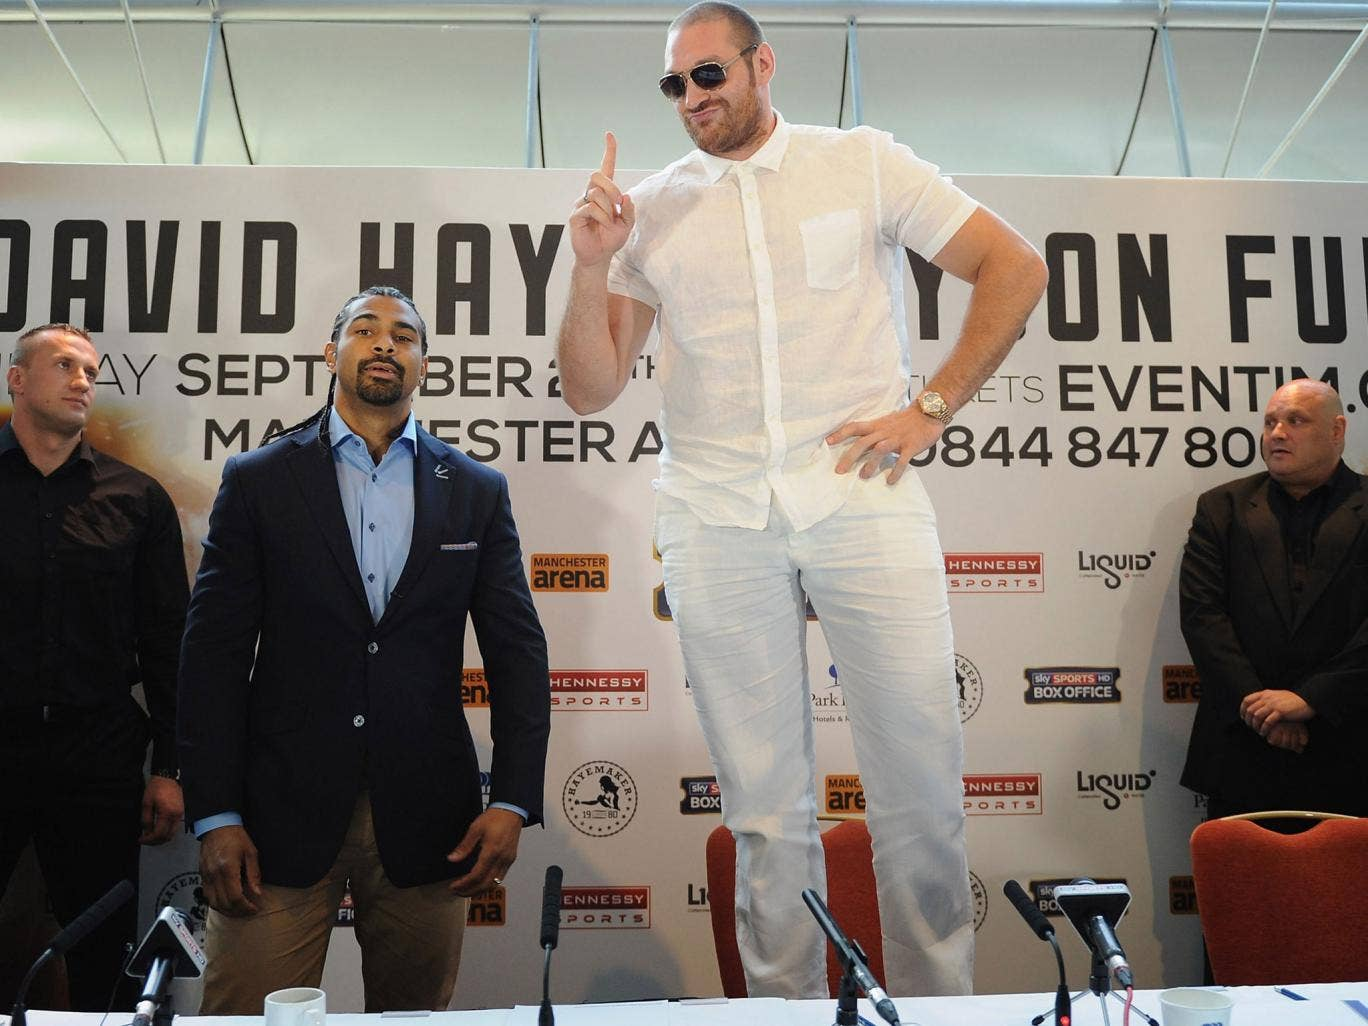 Tyson Fury stands on a chair to make a point during his press conference with David Haye